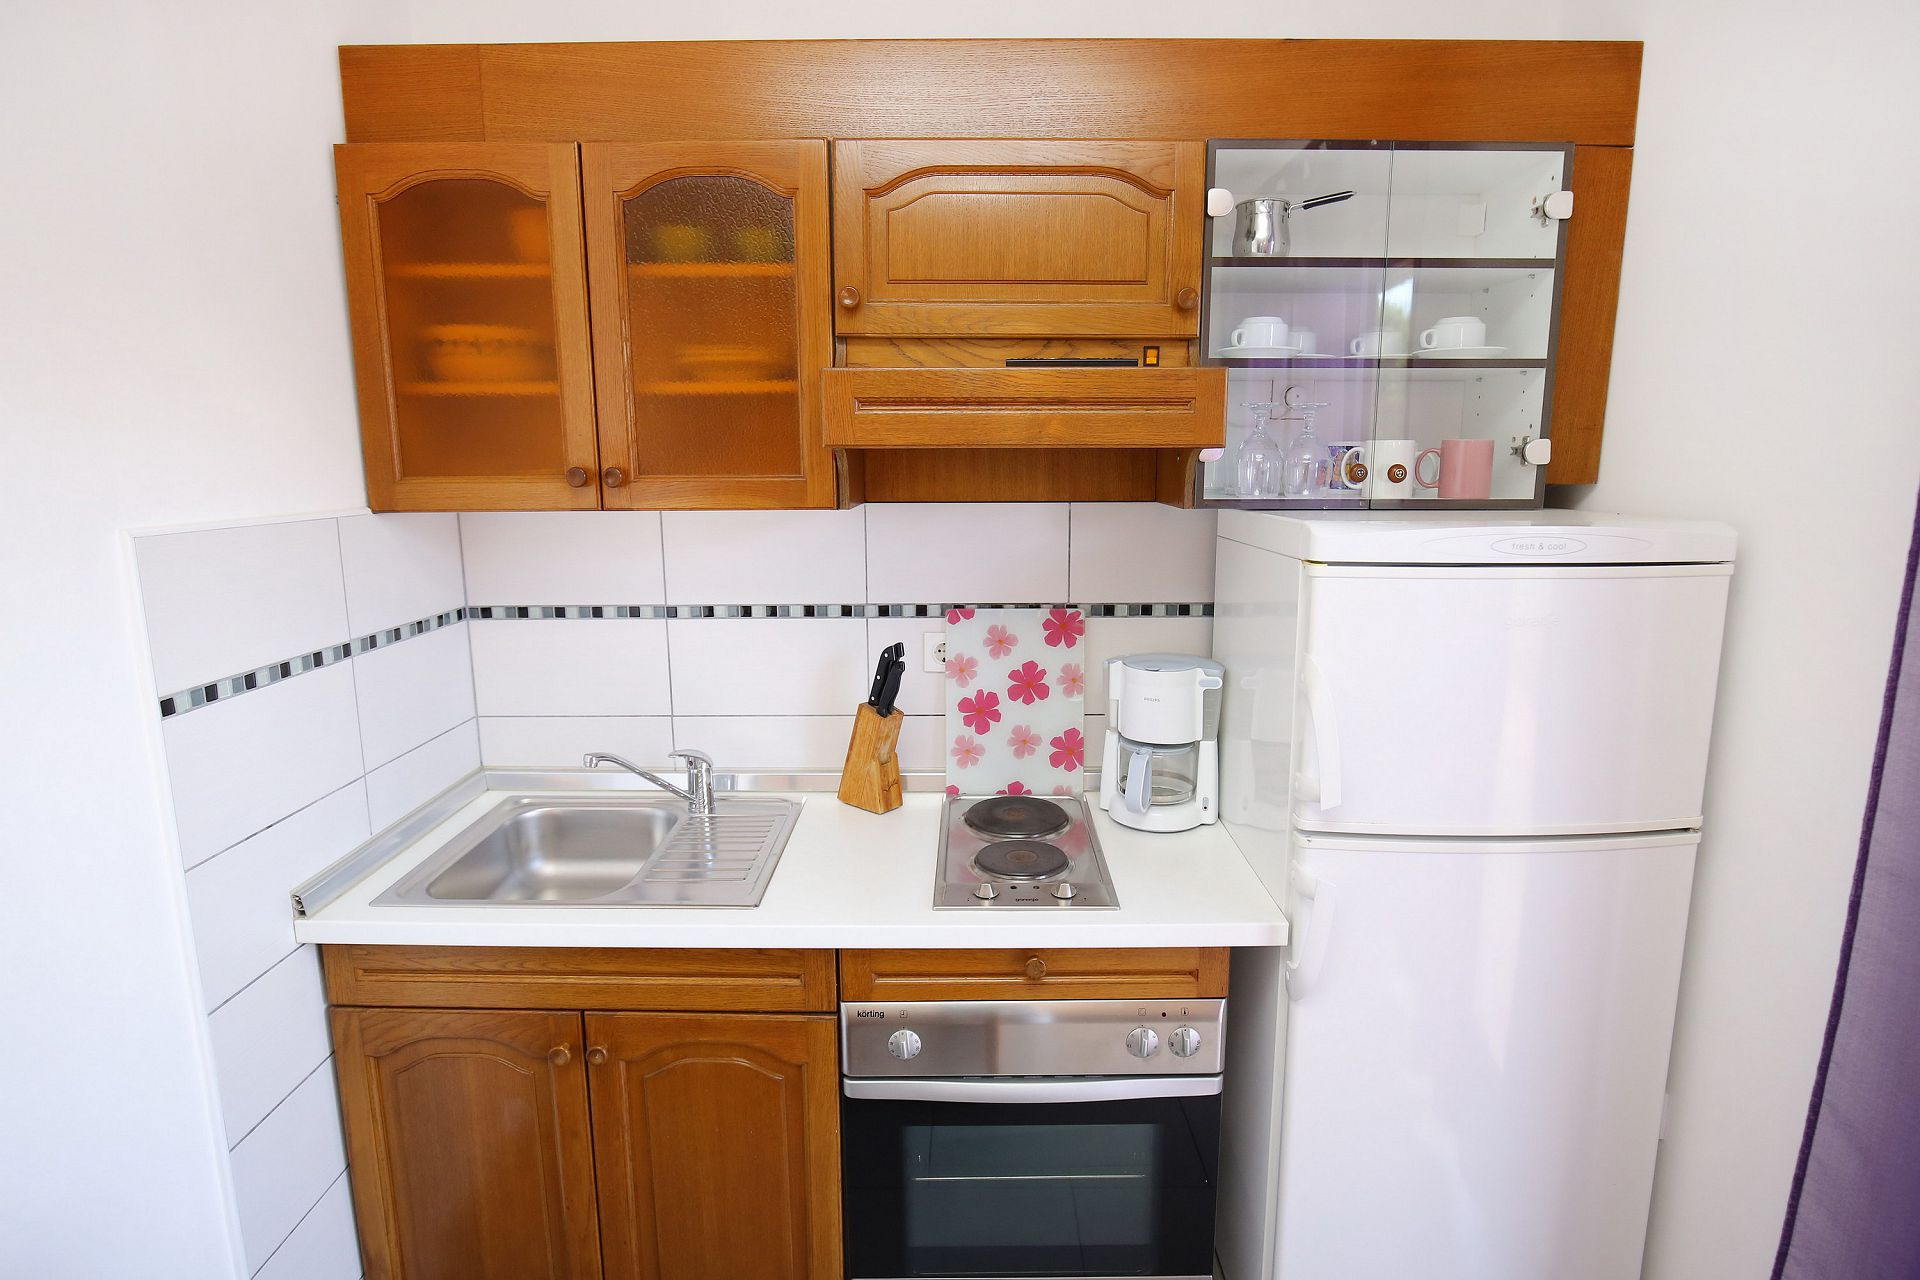 00418ZATZ - Zaton (Zadar) - Apartments Croatia - A2(2+2): kitchen